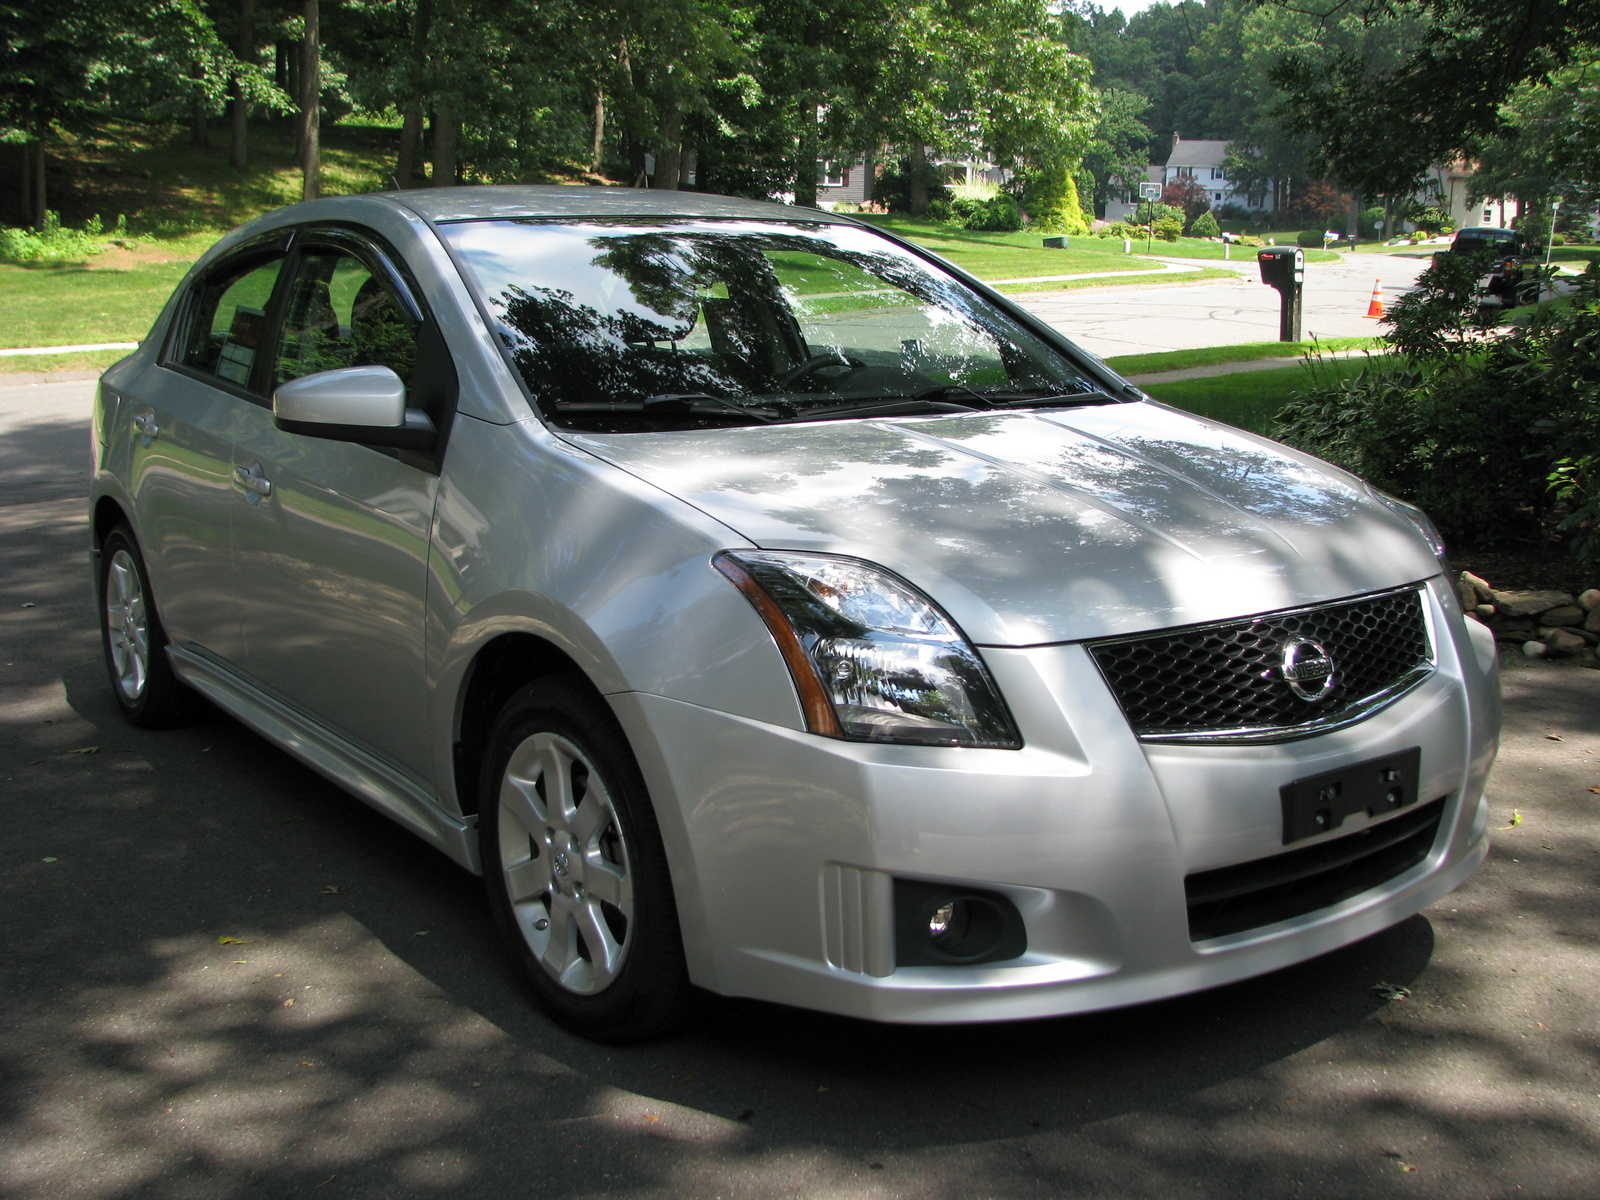 2012 nissan sentra pictures cargurus. Black Bedroom Furniture Sets. Home Design Ideas